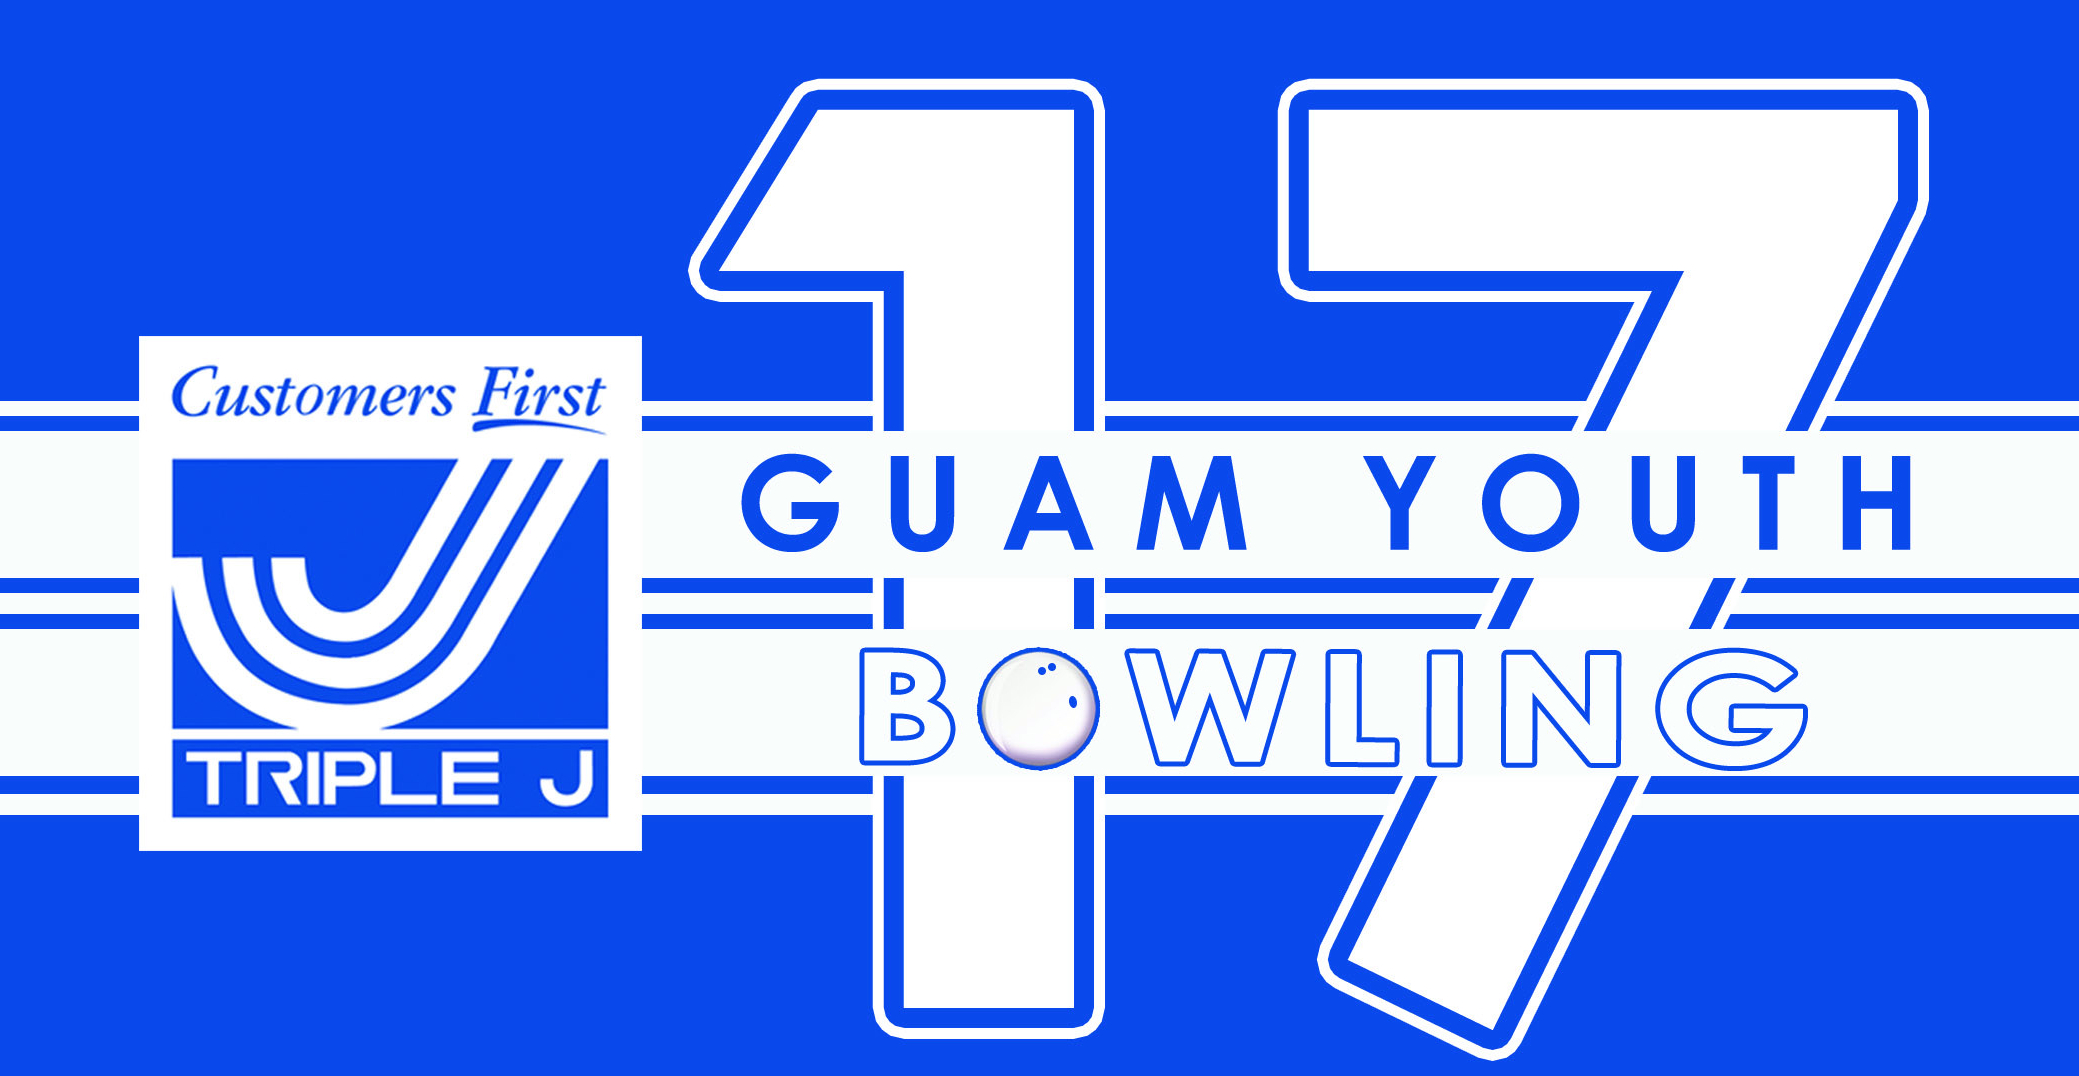 guam-youth-bowling-shirt-design-5.jpg